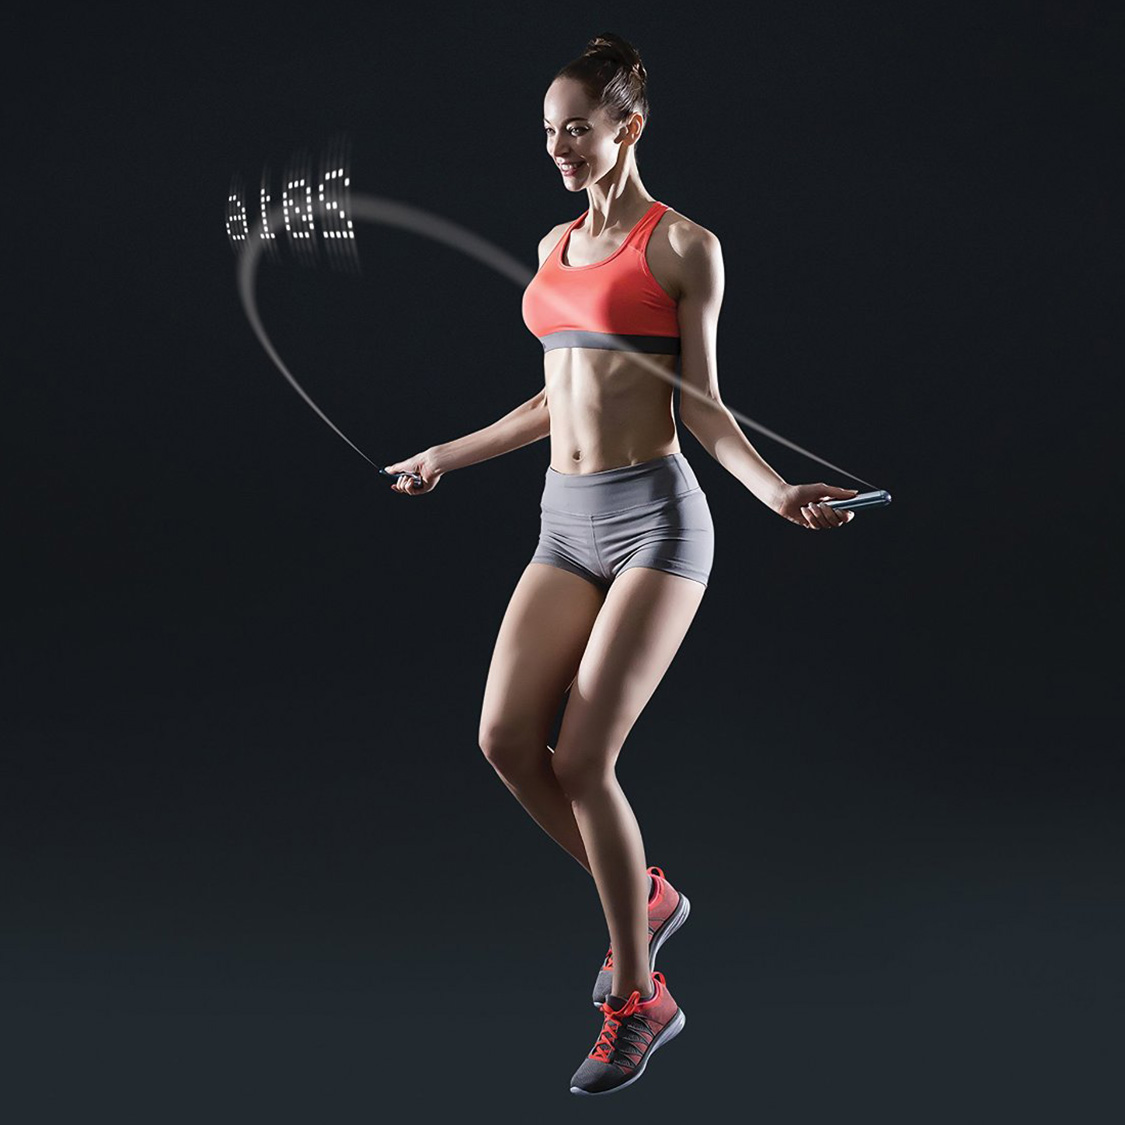 Luxury's answer to the classic jump rope